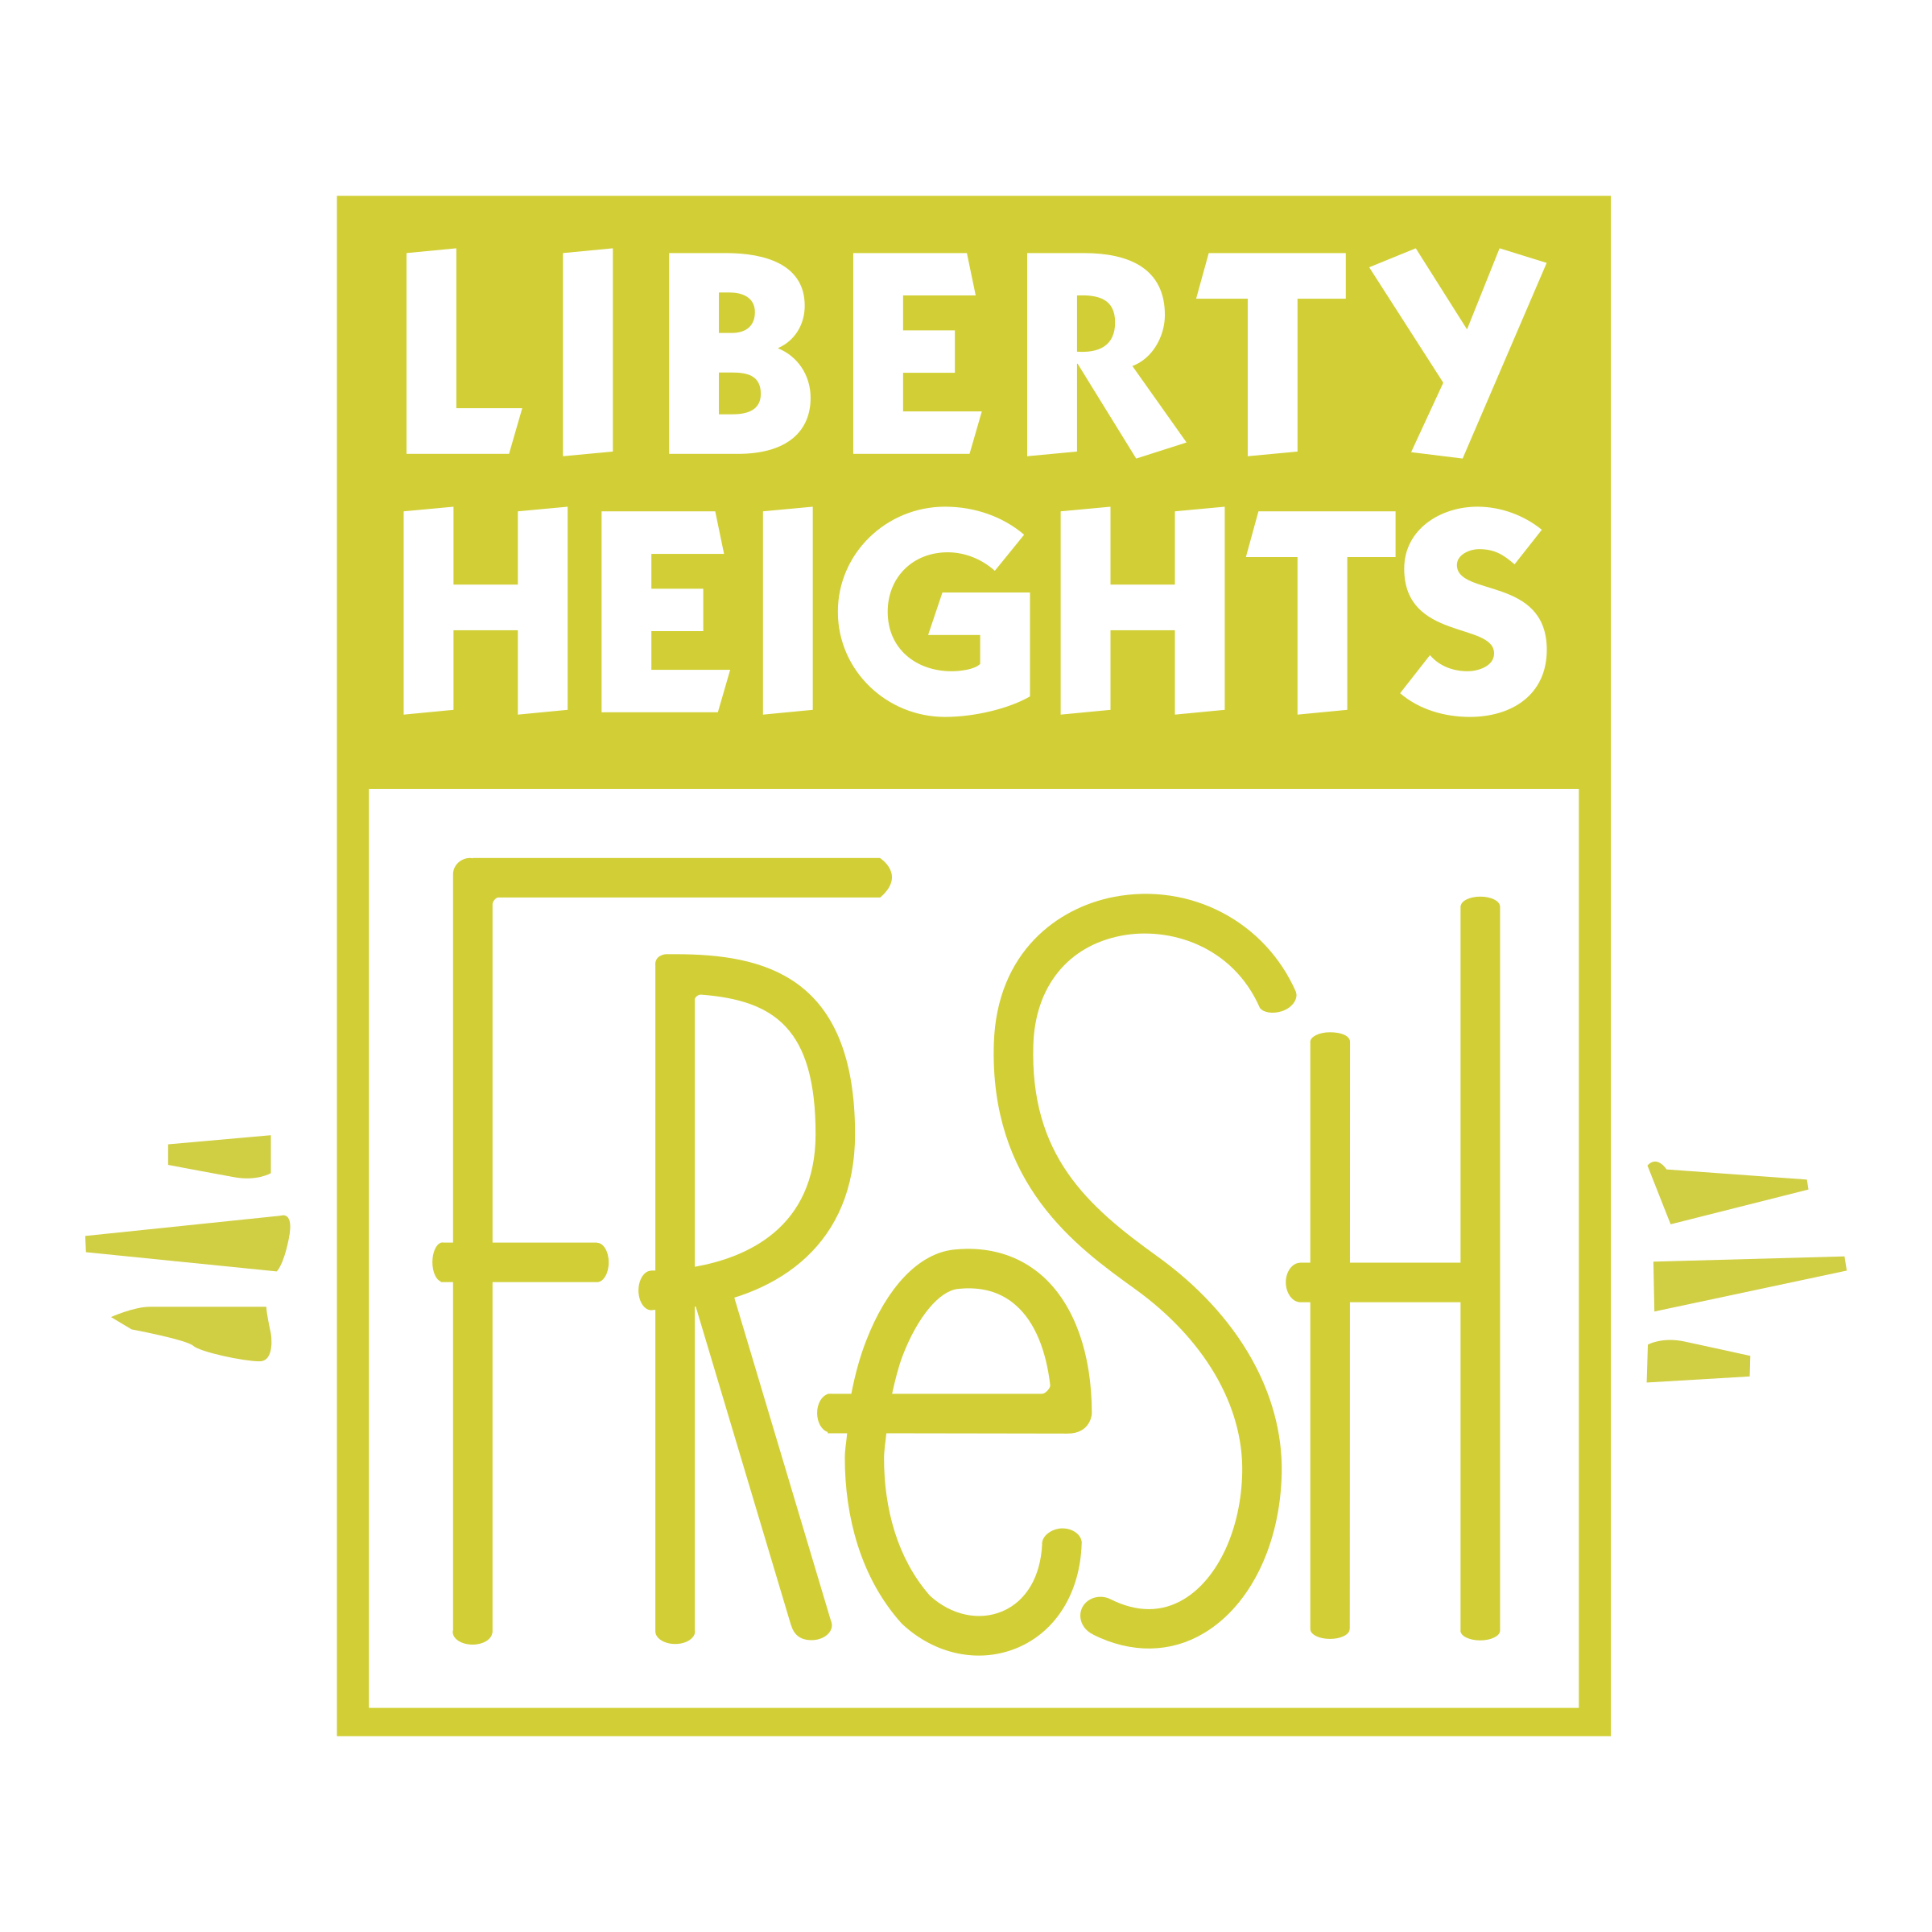 liberty-heights-fresh-logo-png-transparent.png